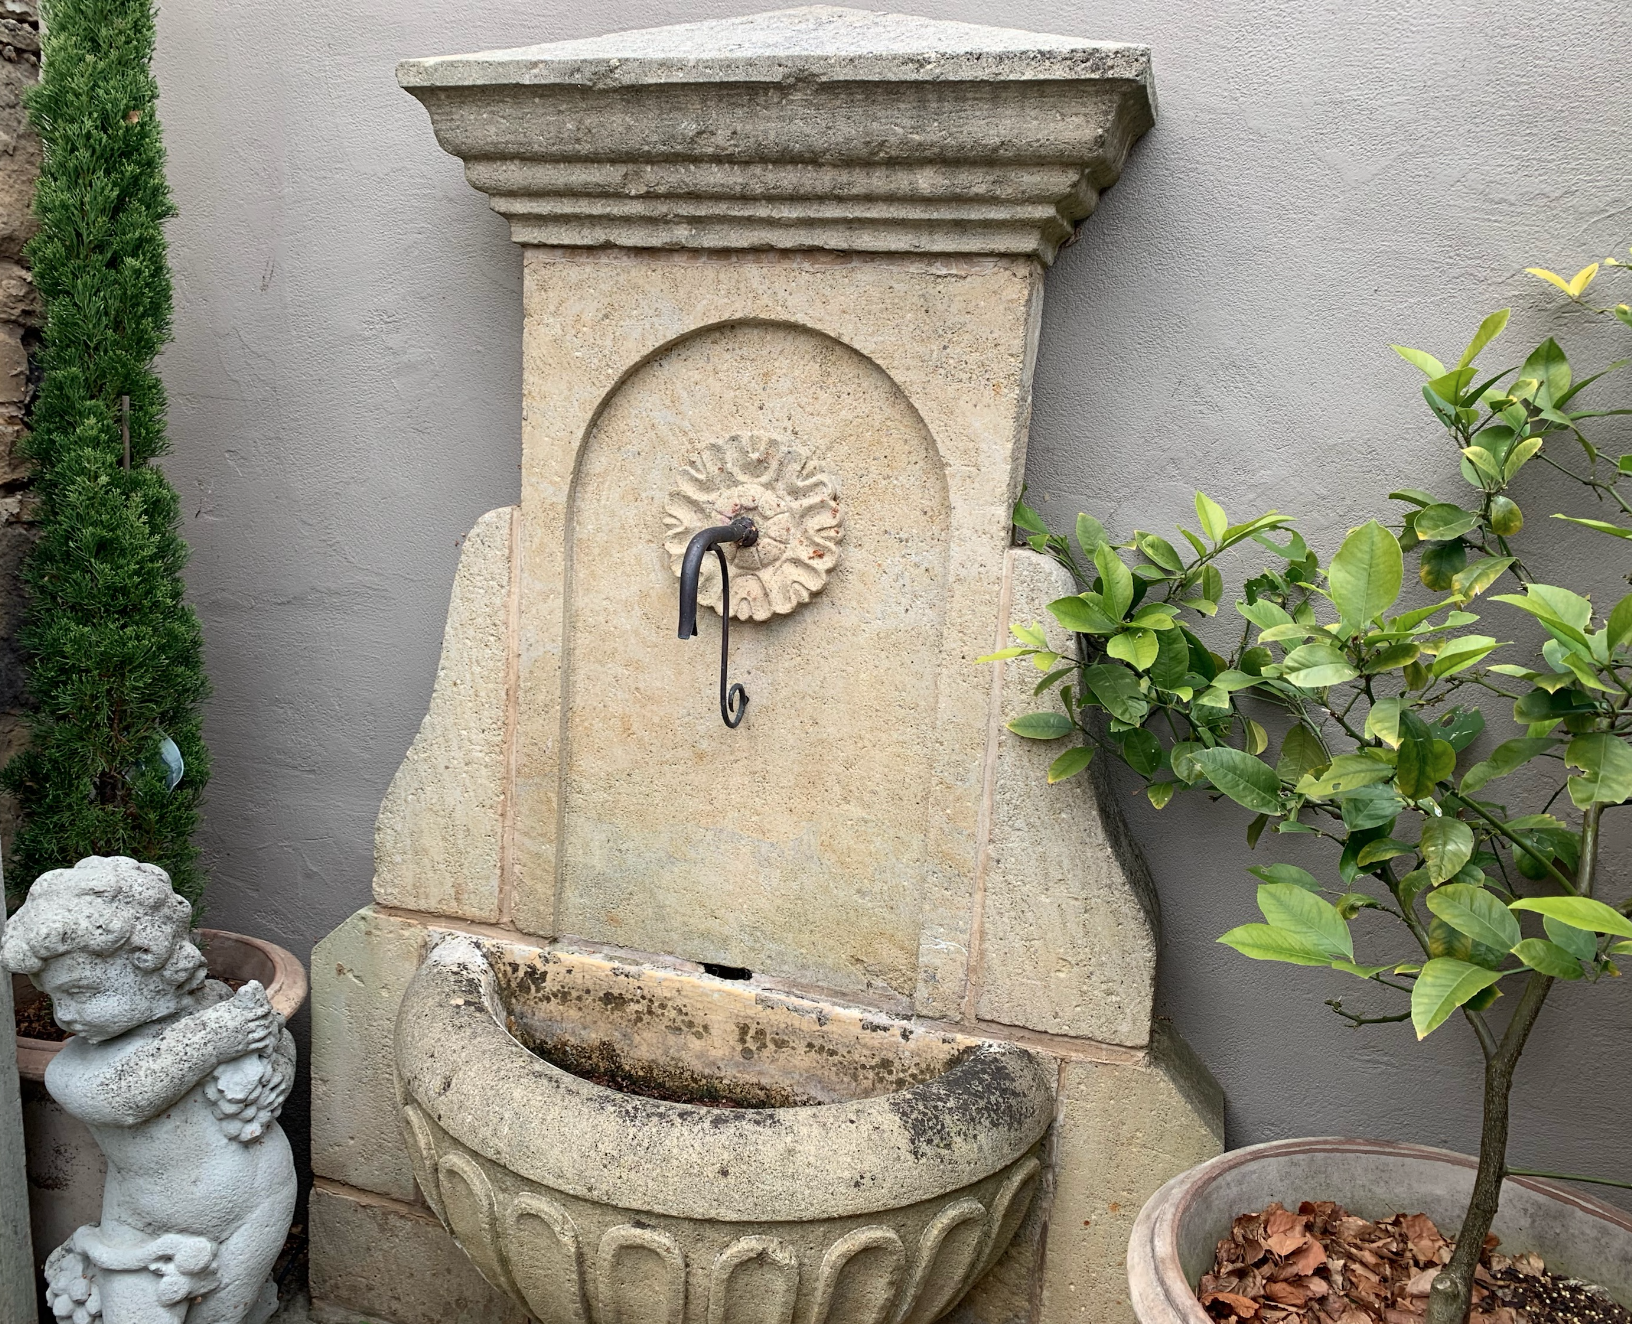 FWF1668 Deco stone wall fountain with copper spout  $2850